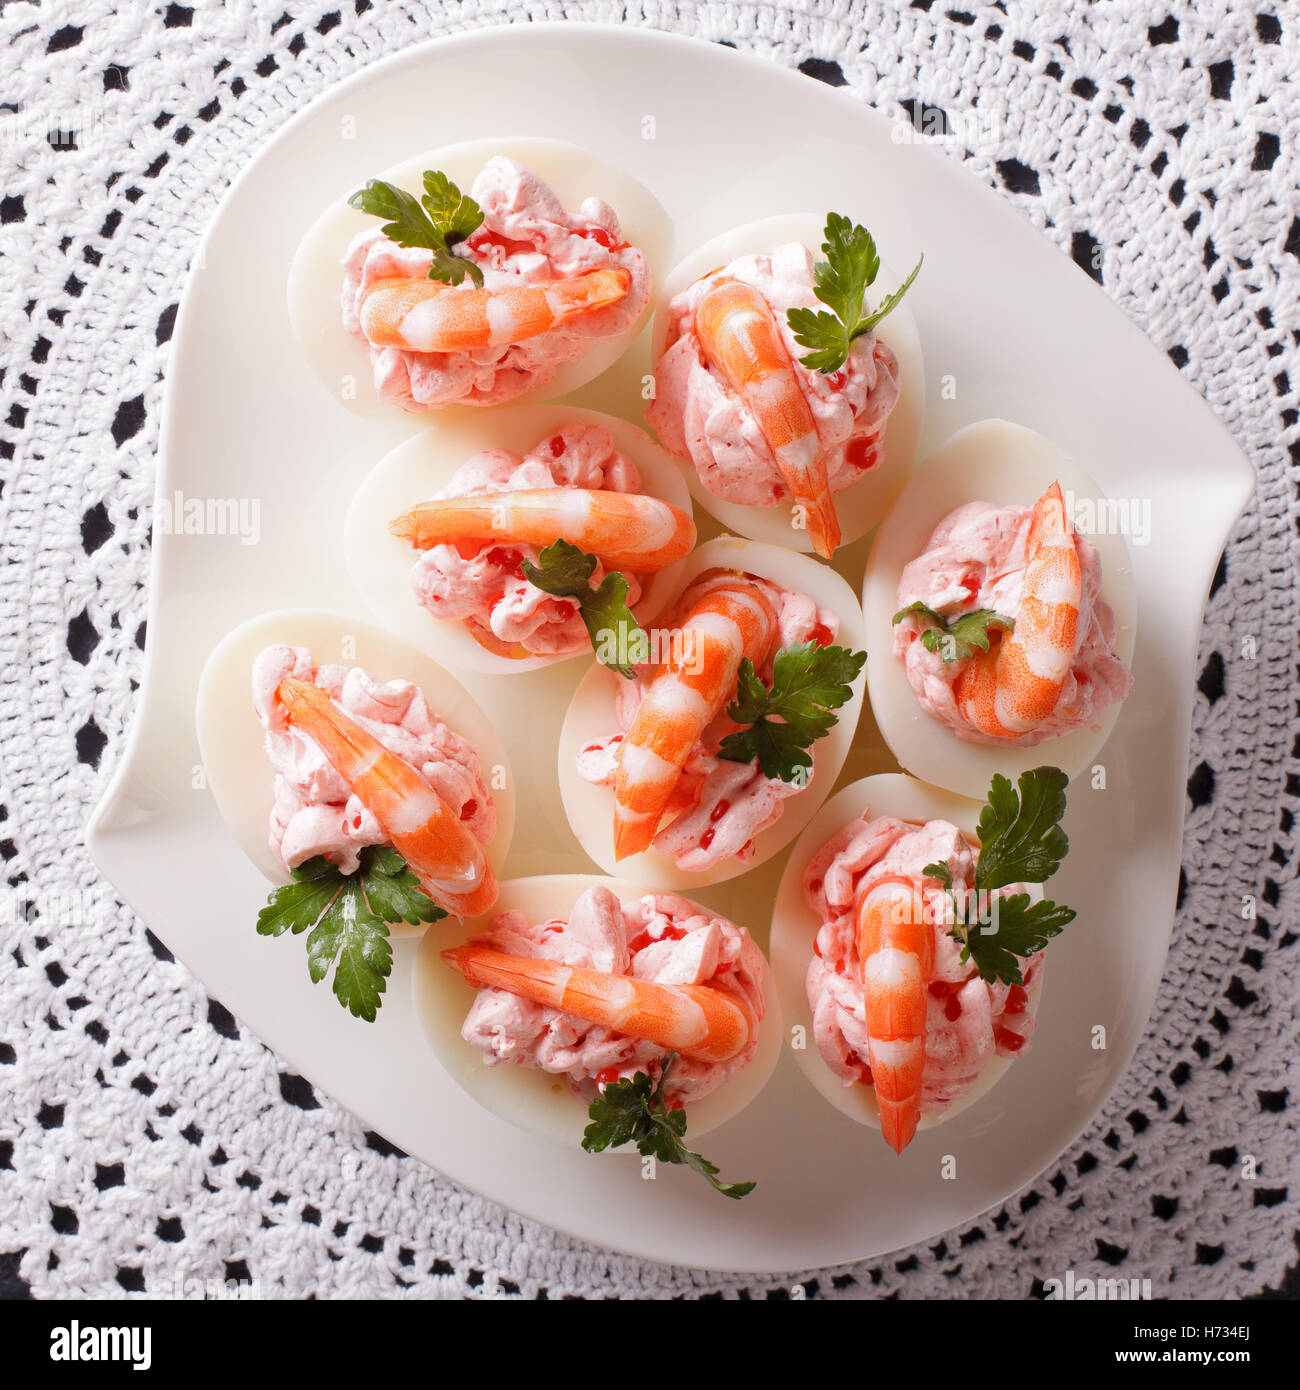 eggs stuffed with prawns and cream cheese close up. view from above - Stock Image